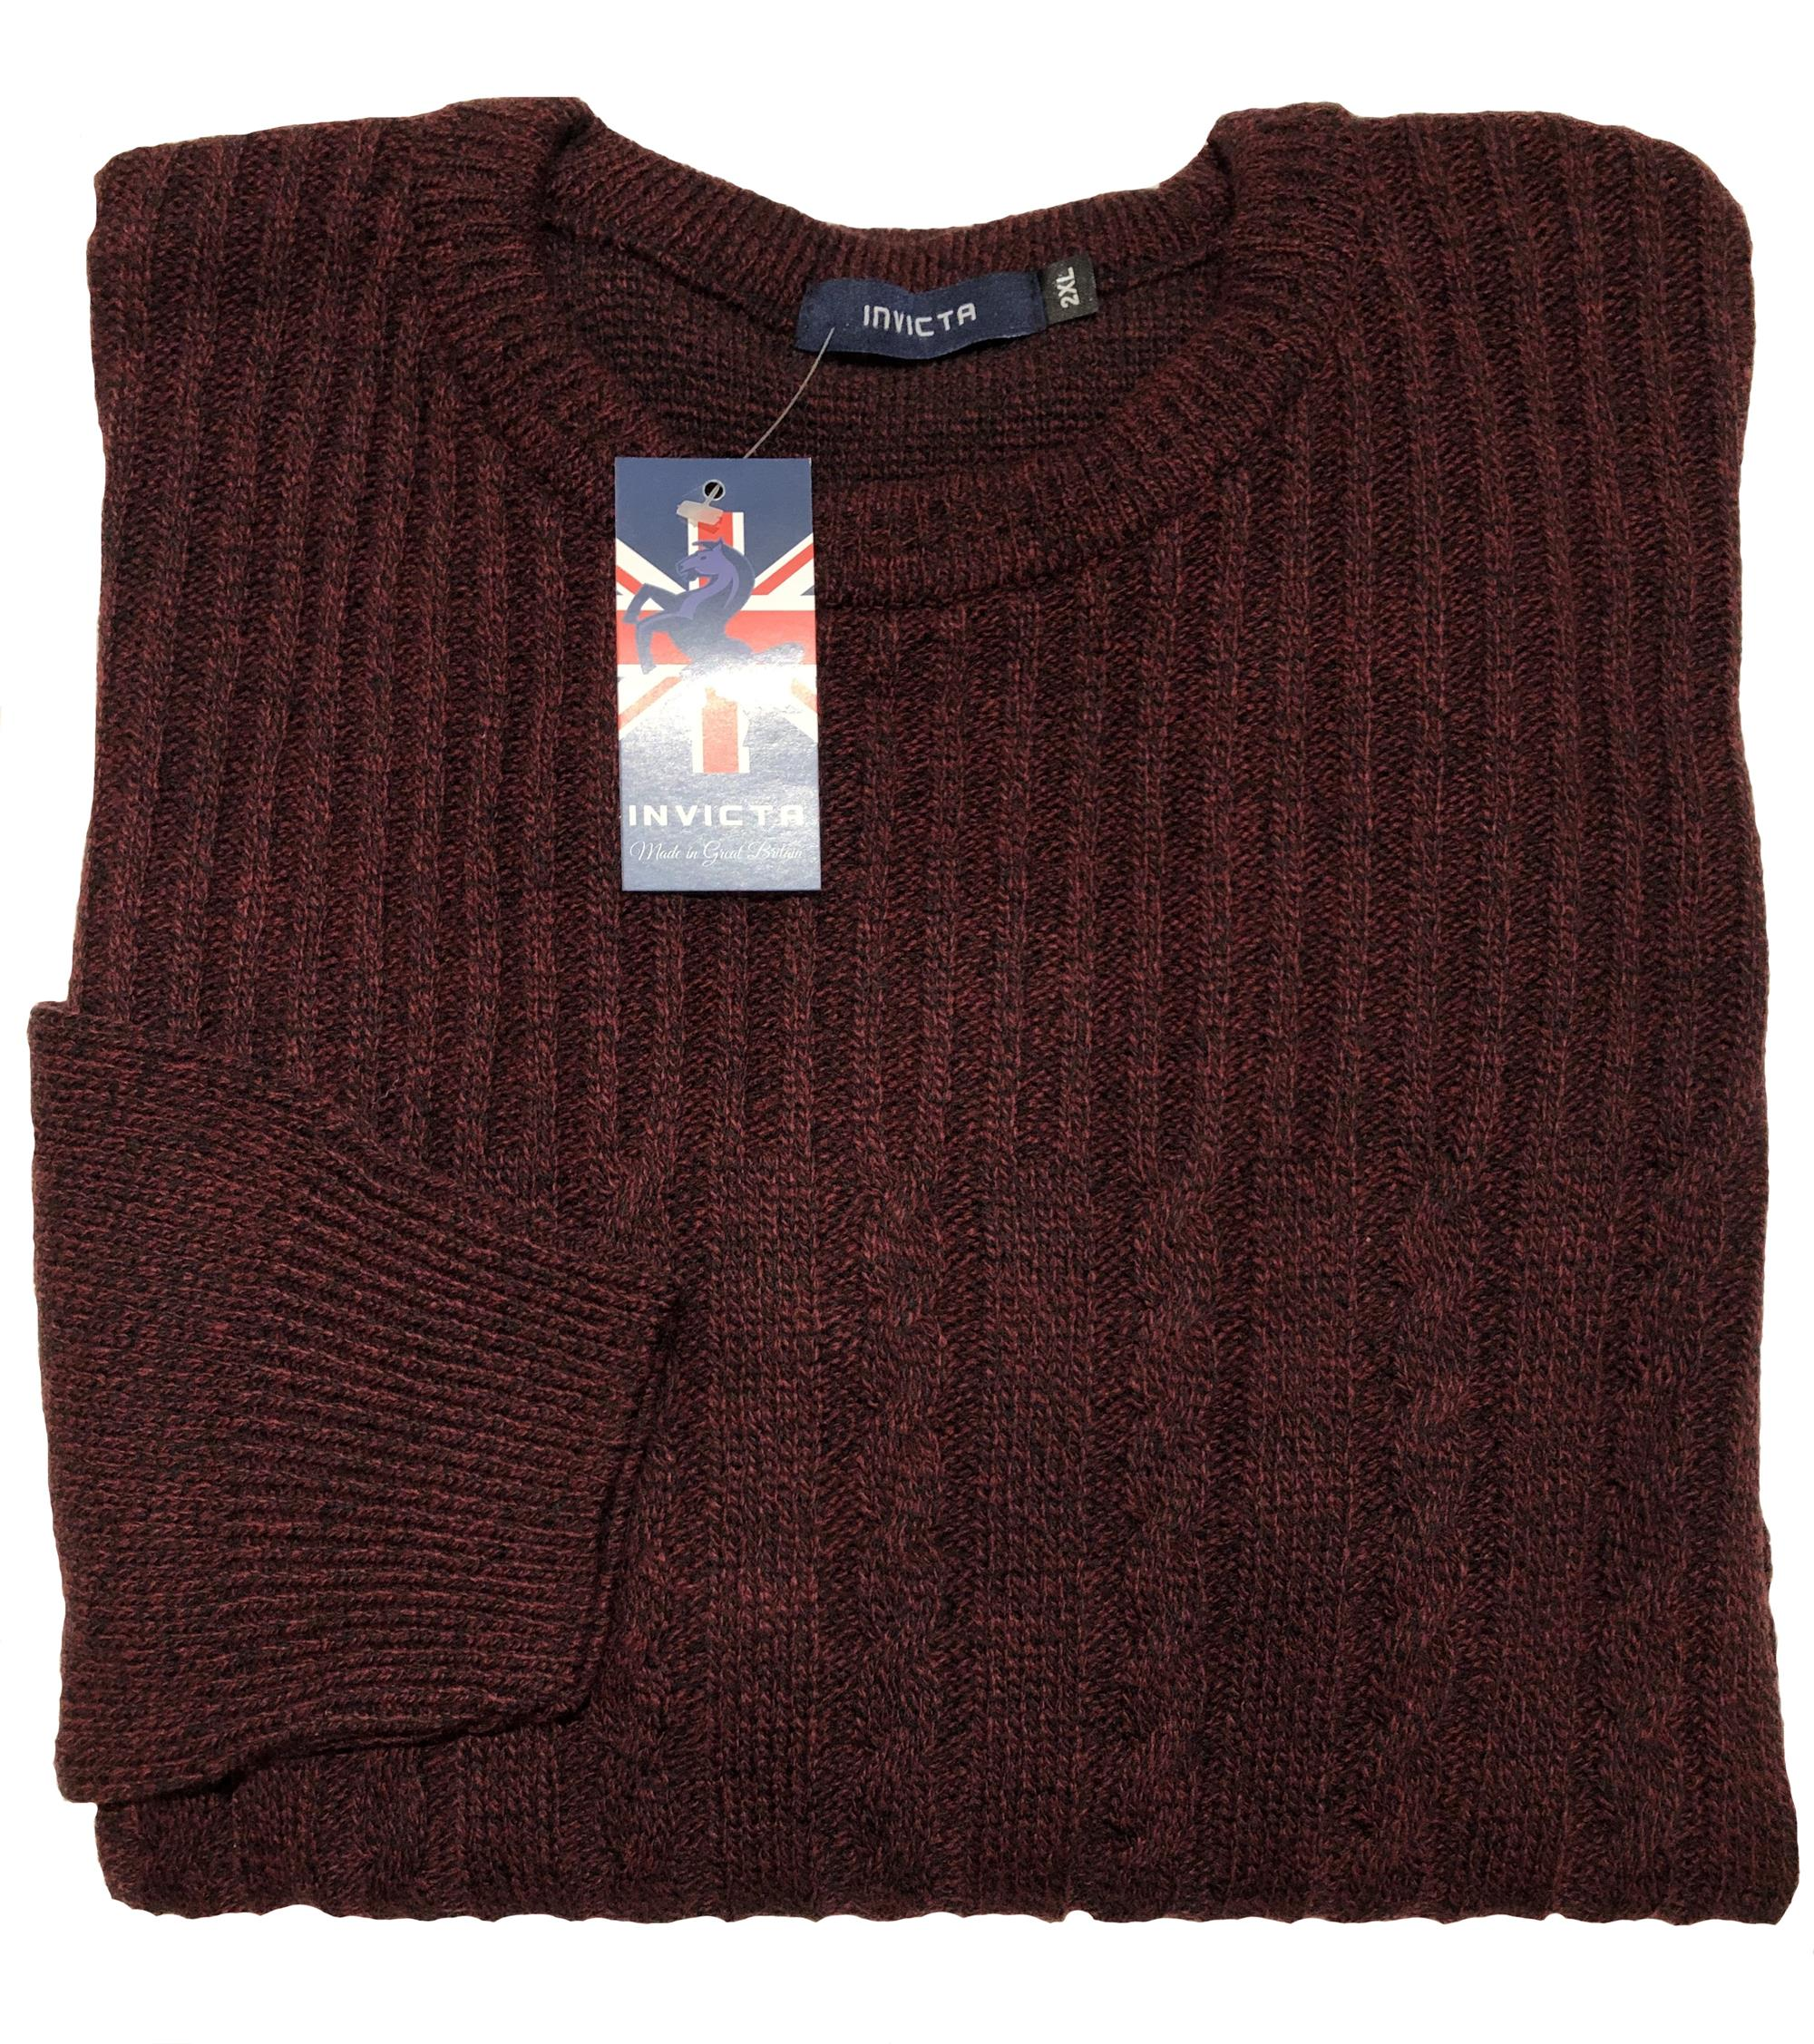 cable knit crew neck sweater (burgundy)